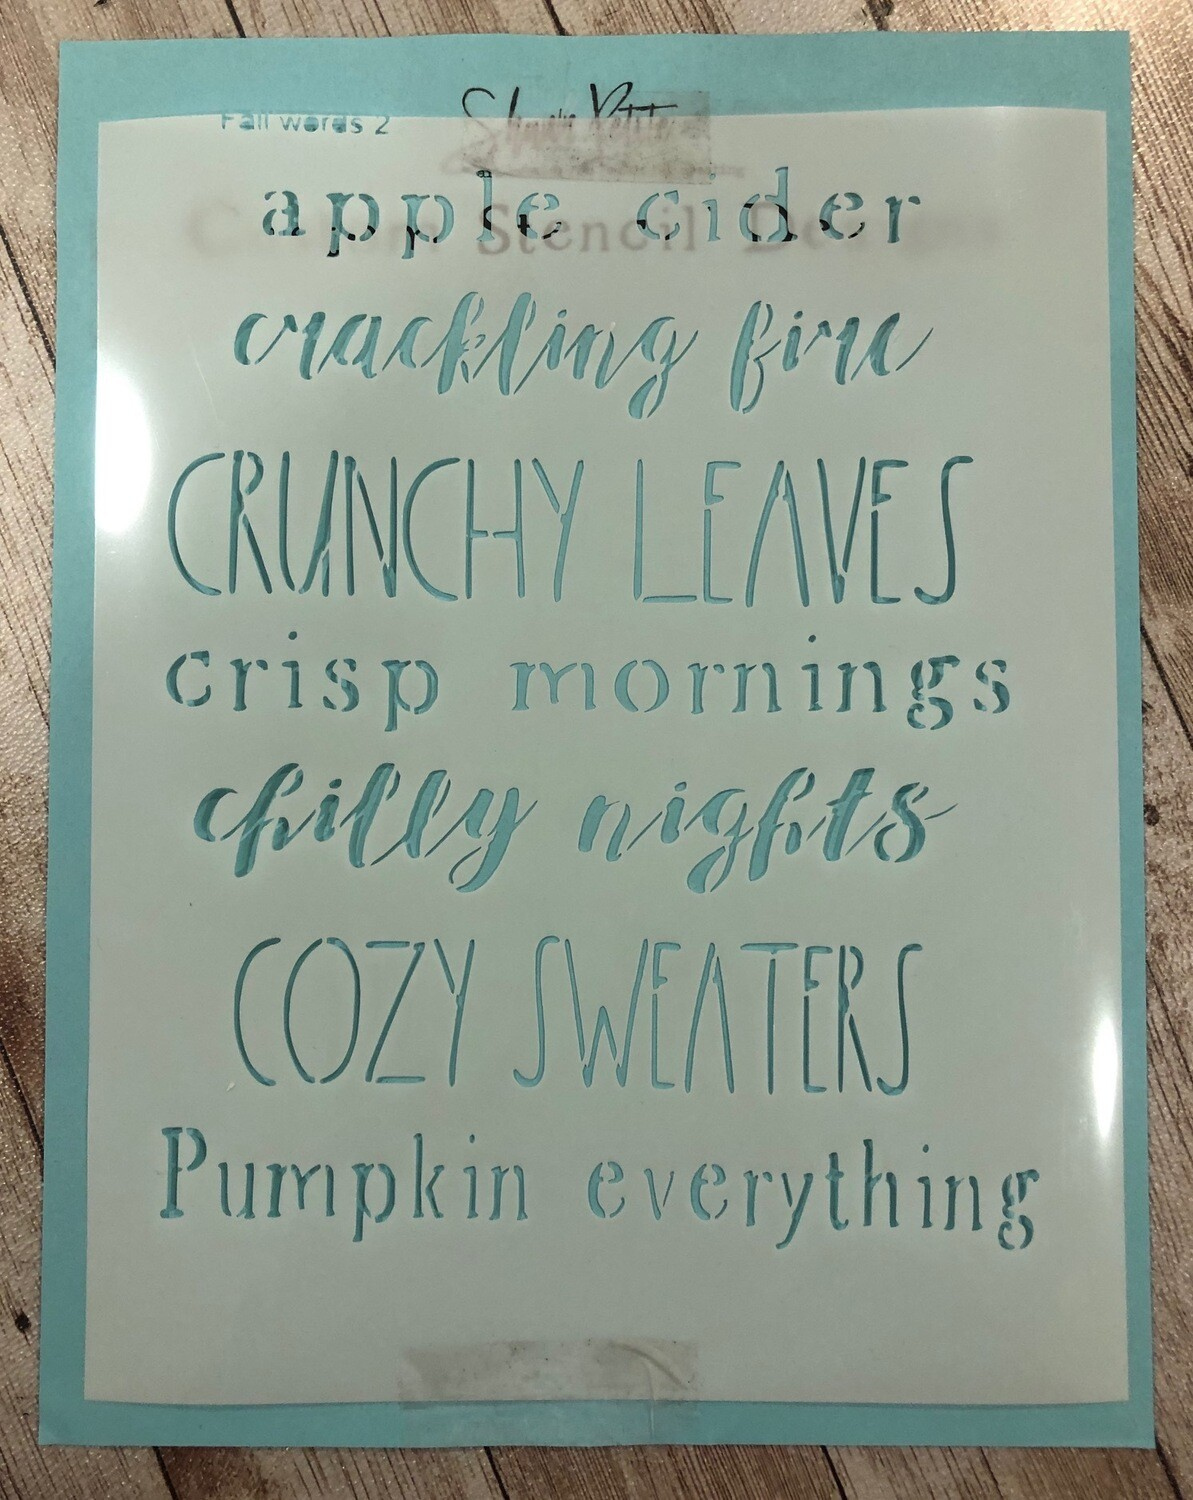 Fall Words 2 stencil clearance